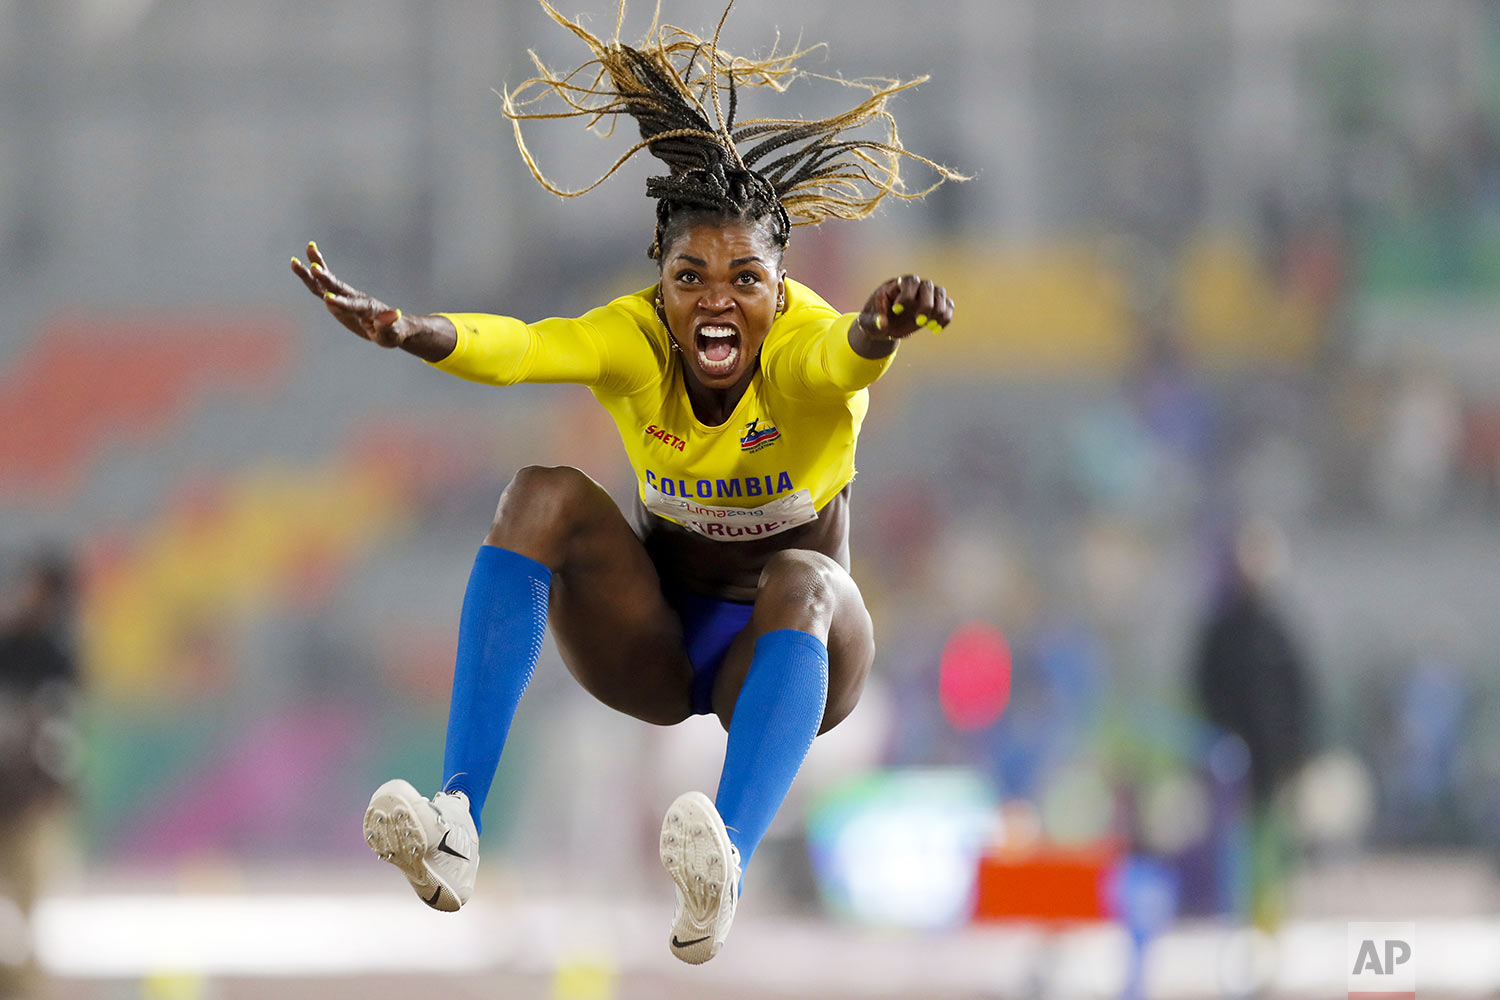 Caterine Ibarguen of Colombia competes in the women's long jump during the athletics at the Pan American Games in Lima, Peru, Tuesday, Aug. 6, 2019. (AP Photo/Fernando Llano)